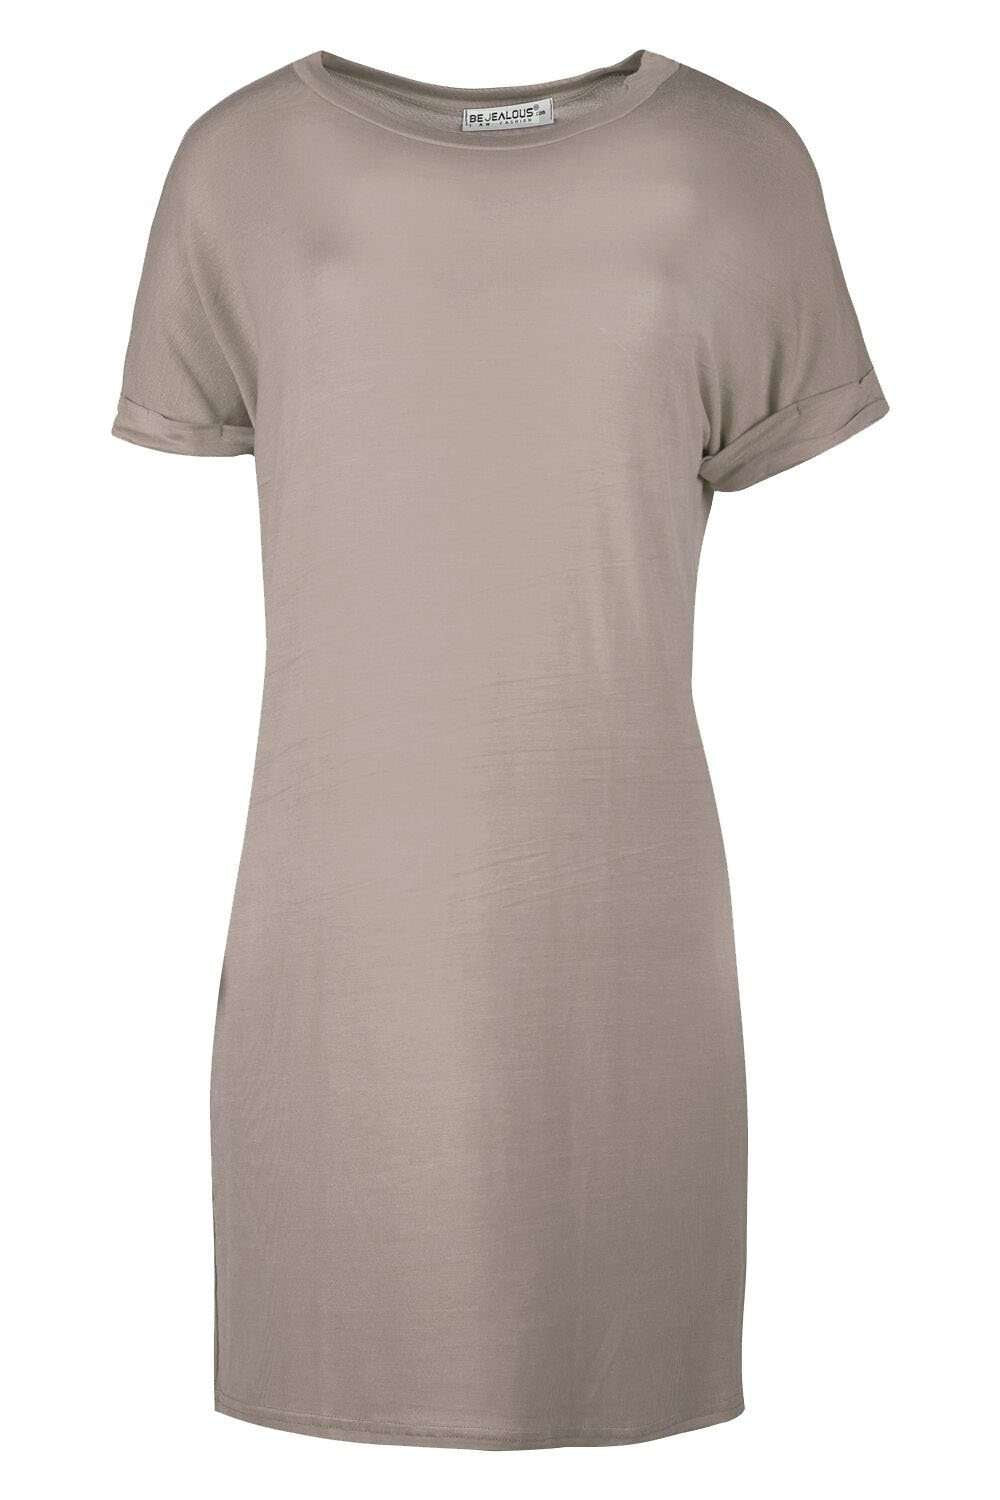 Beige Roll Sleeve Oversized Basic Tshirt Dress - bejealous-com